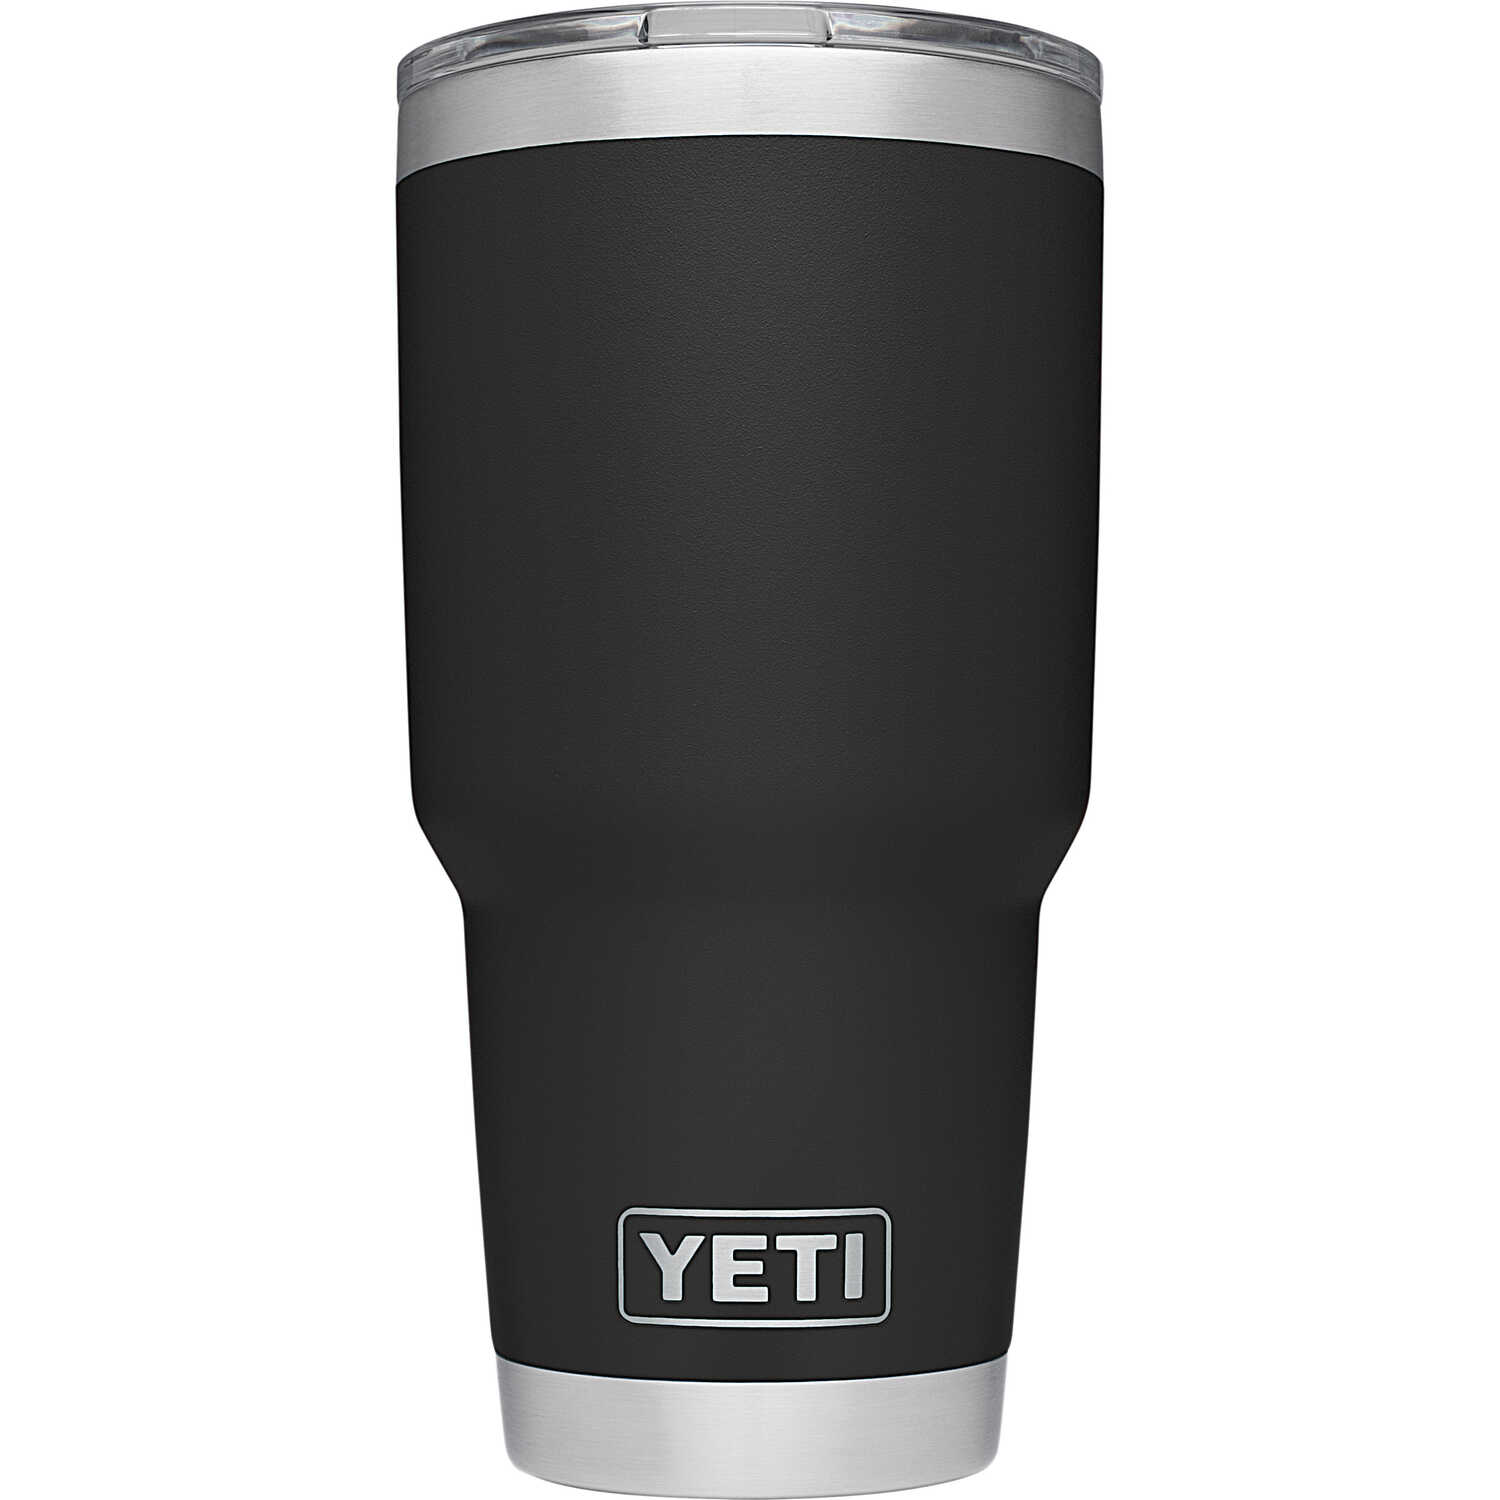 YETI  Rambler  30 oz. Tumbler with MagSlider Lid  Black